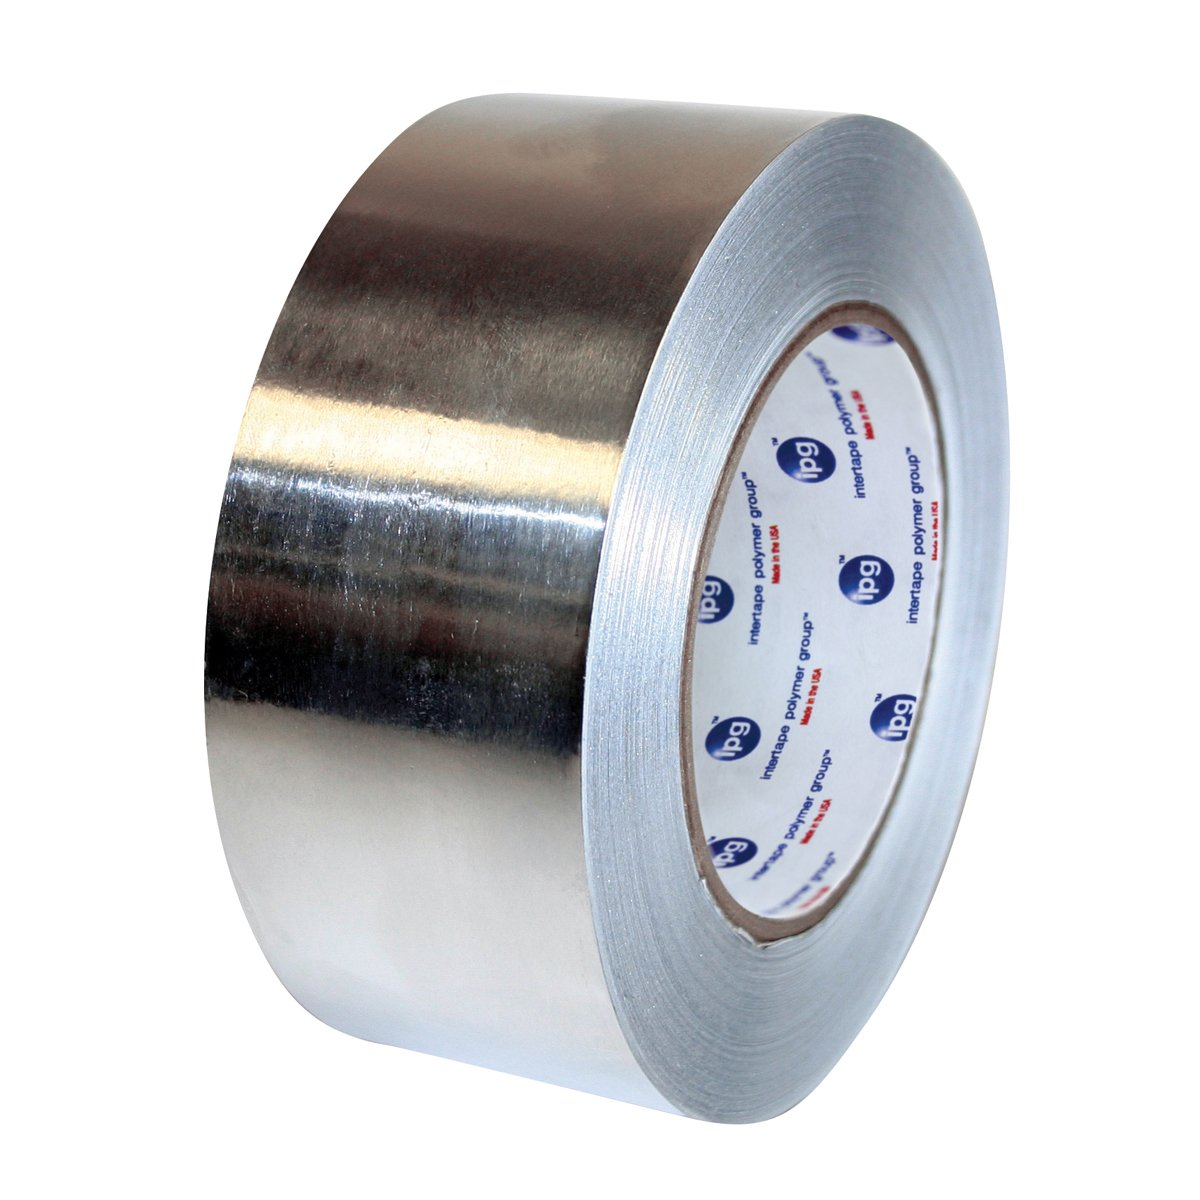 IPG ALF175L Medium Grade Cold Temperature Aluminum Foil Tape, 72mm x 45.7M, Silver, (16-Pack)